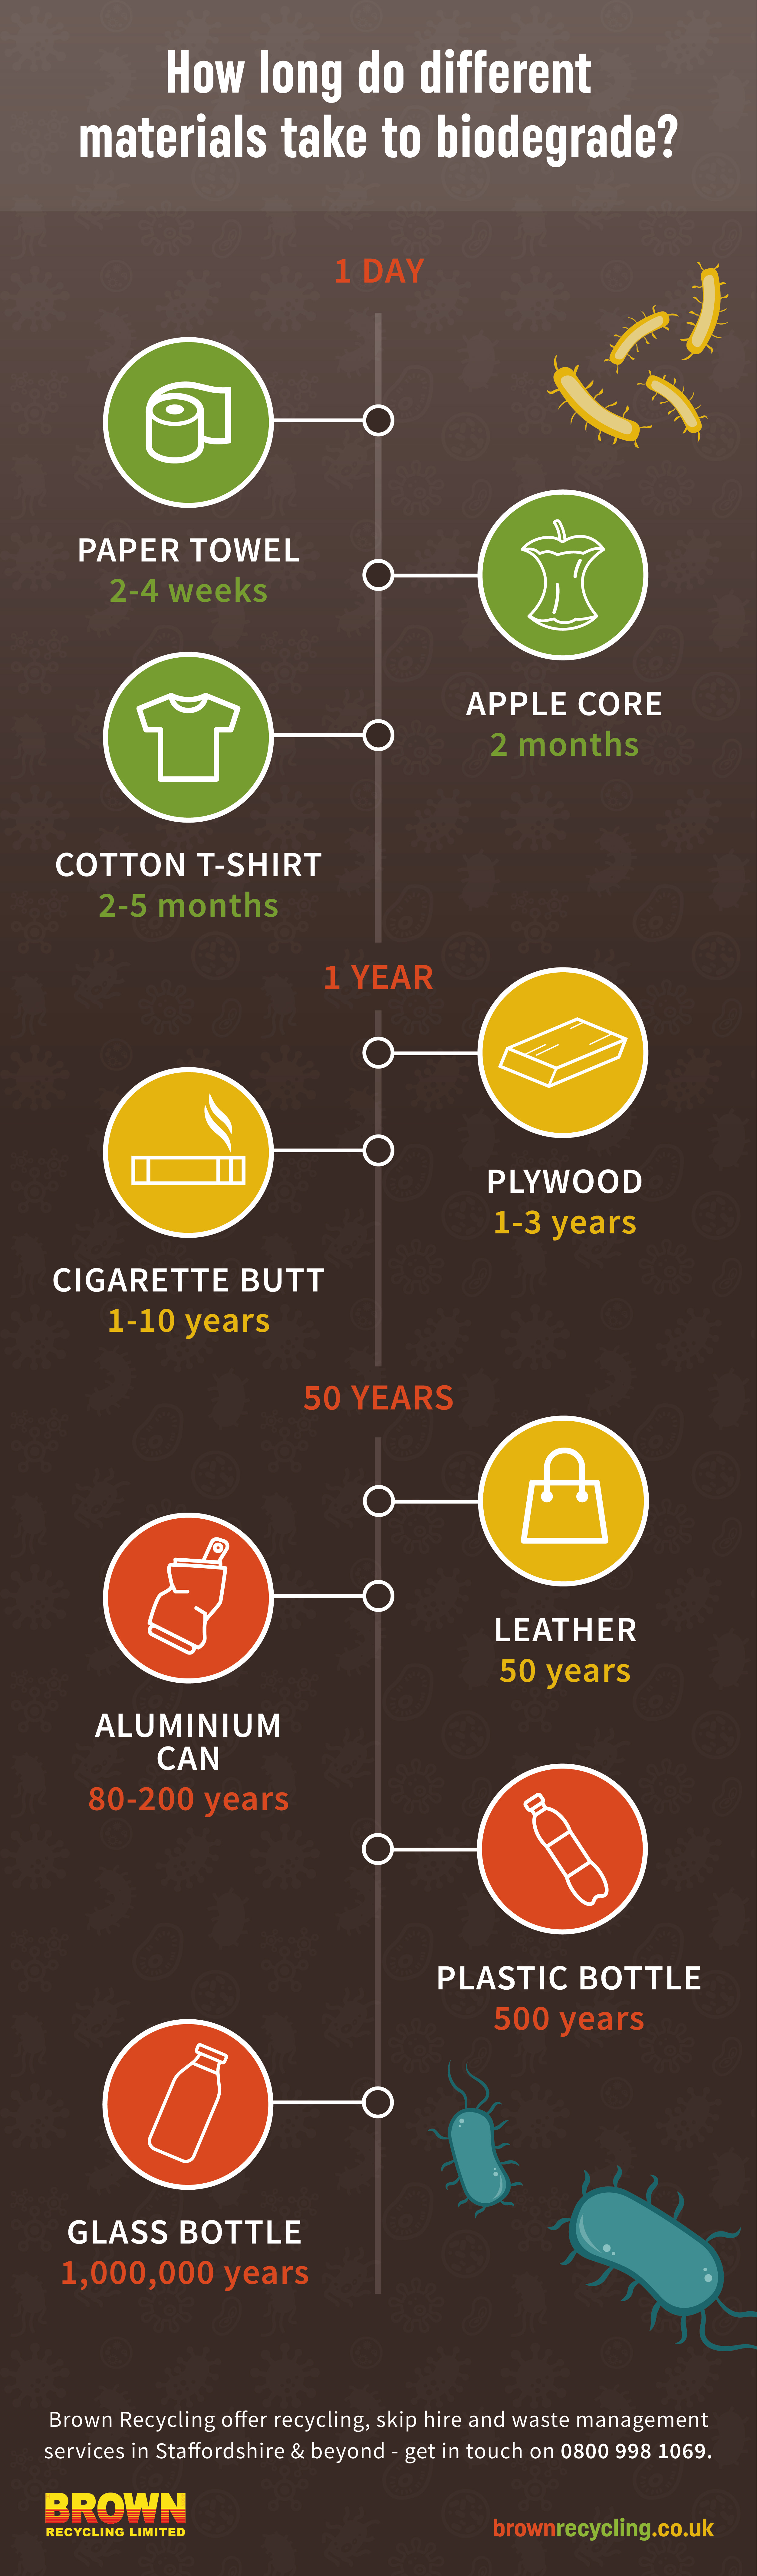 how long do different materials take to biodegrade